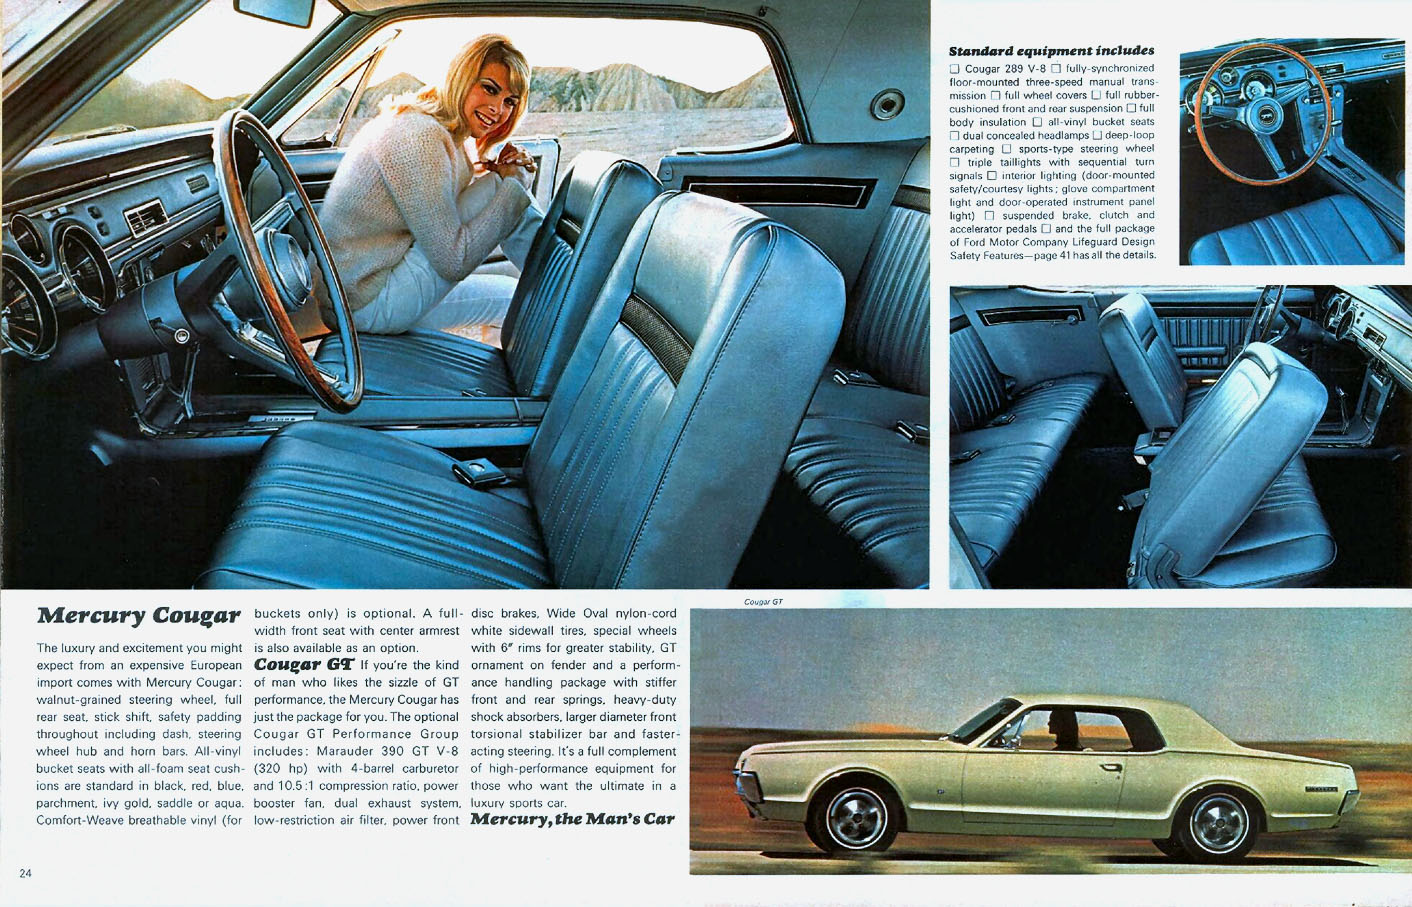 1967 Cougar GT - the Man's Car